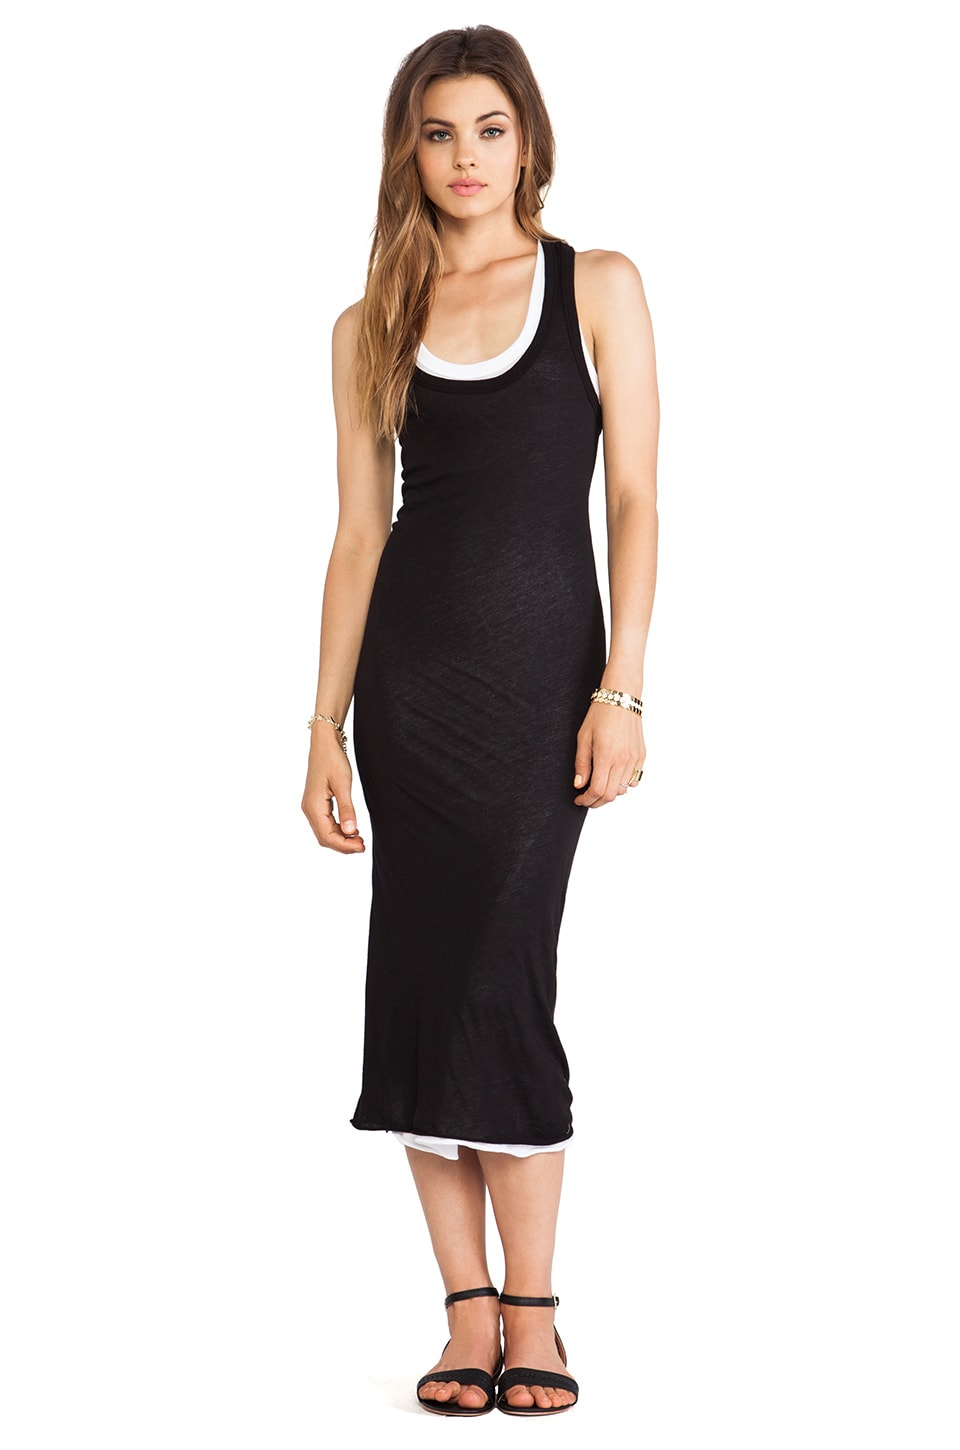 Enza Costa Tissue Jersey Doubled Dress in Black & White